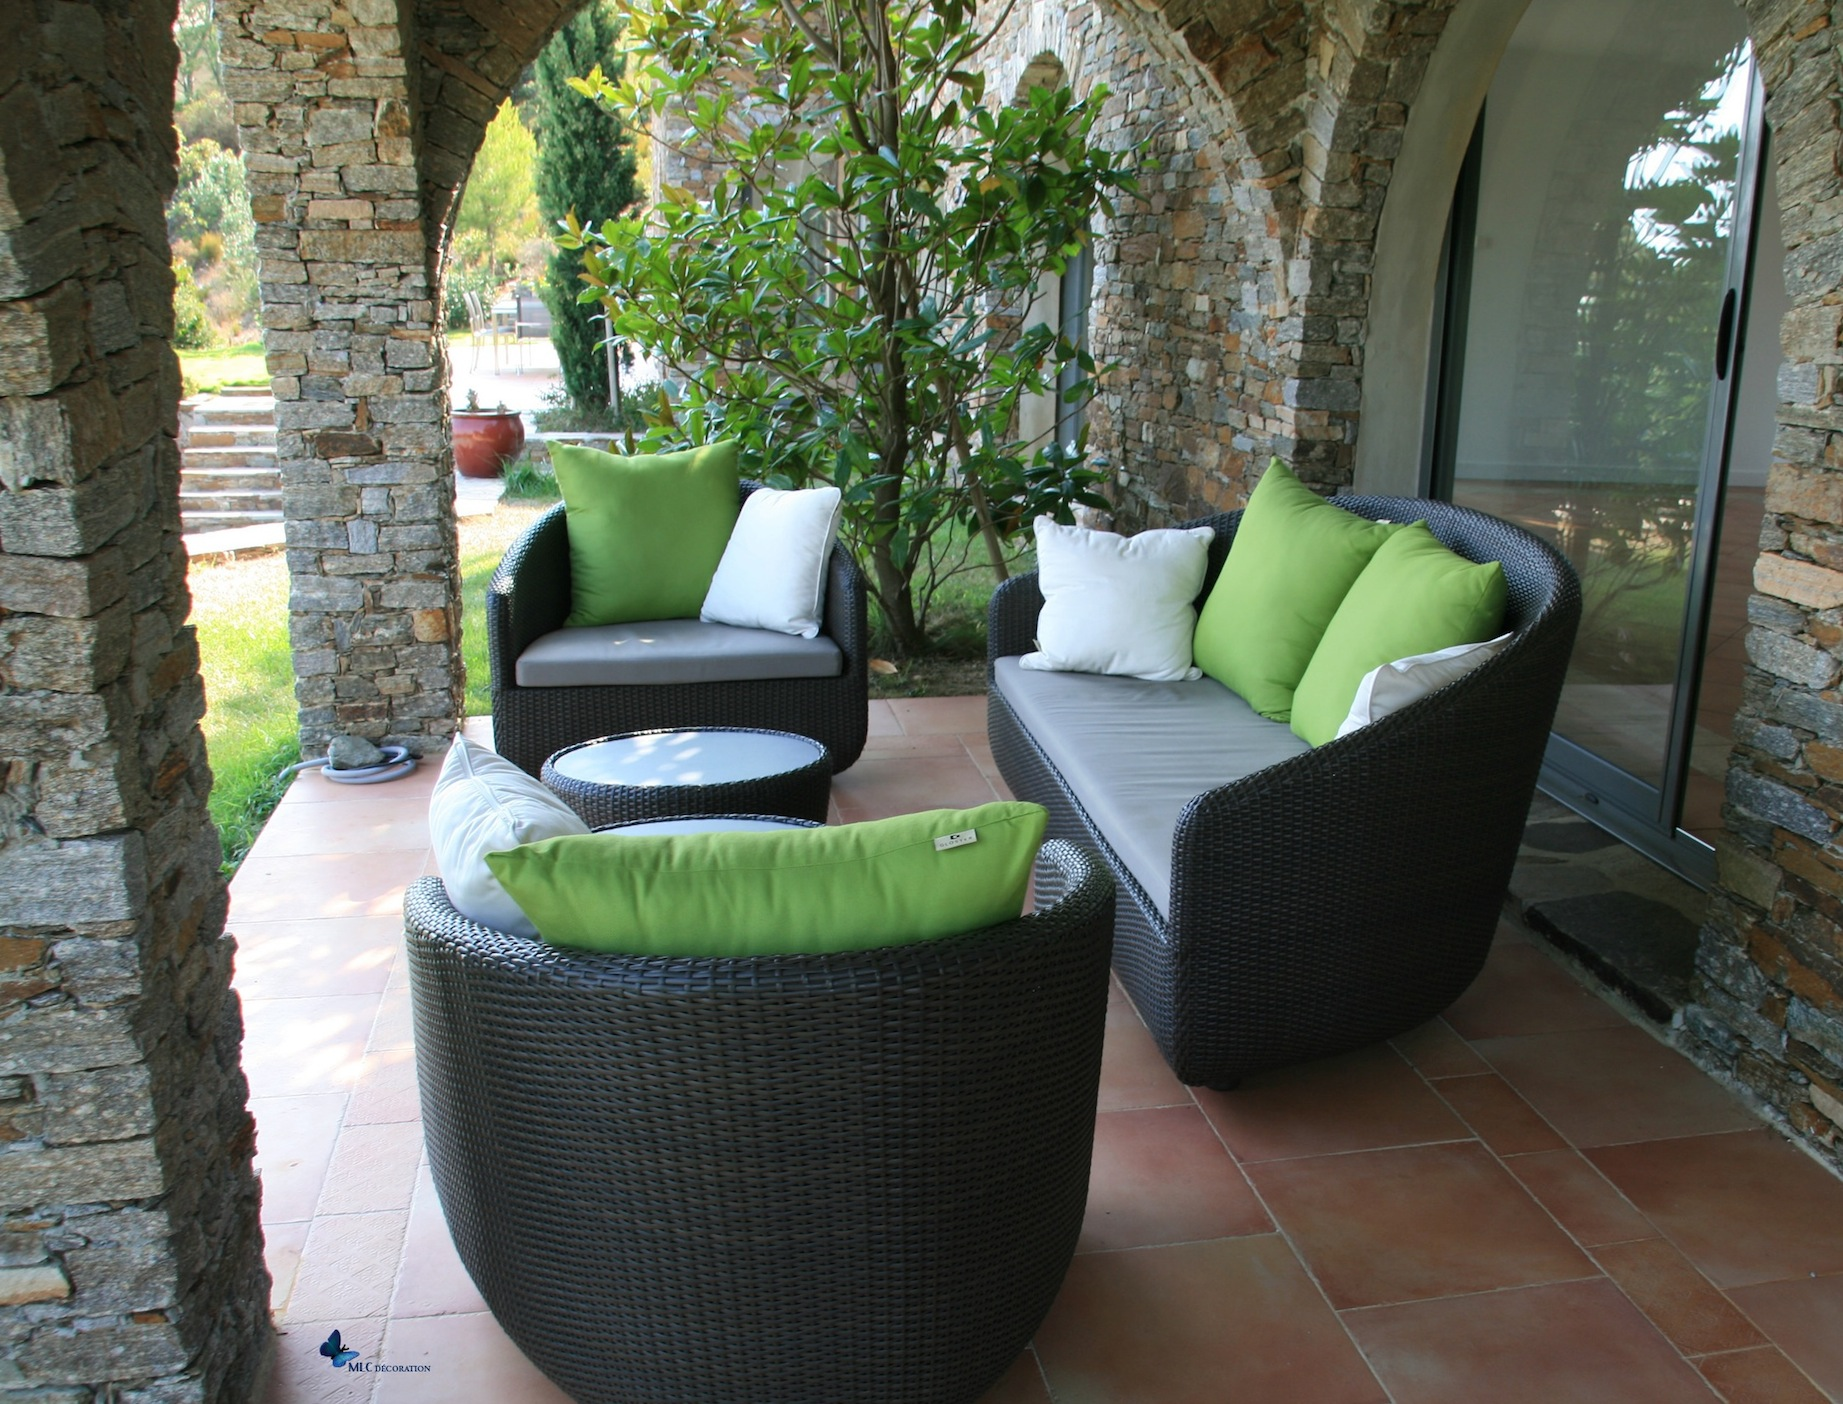 Canap ext rieur design archives le blog d co de mlc for Design jardin exterieur